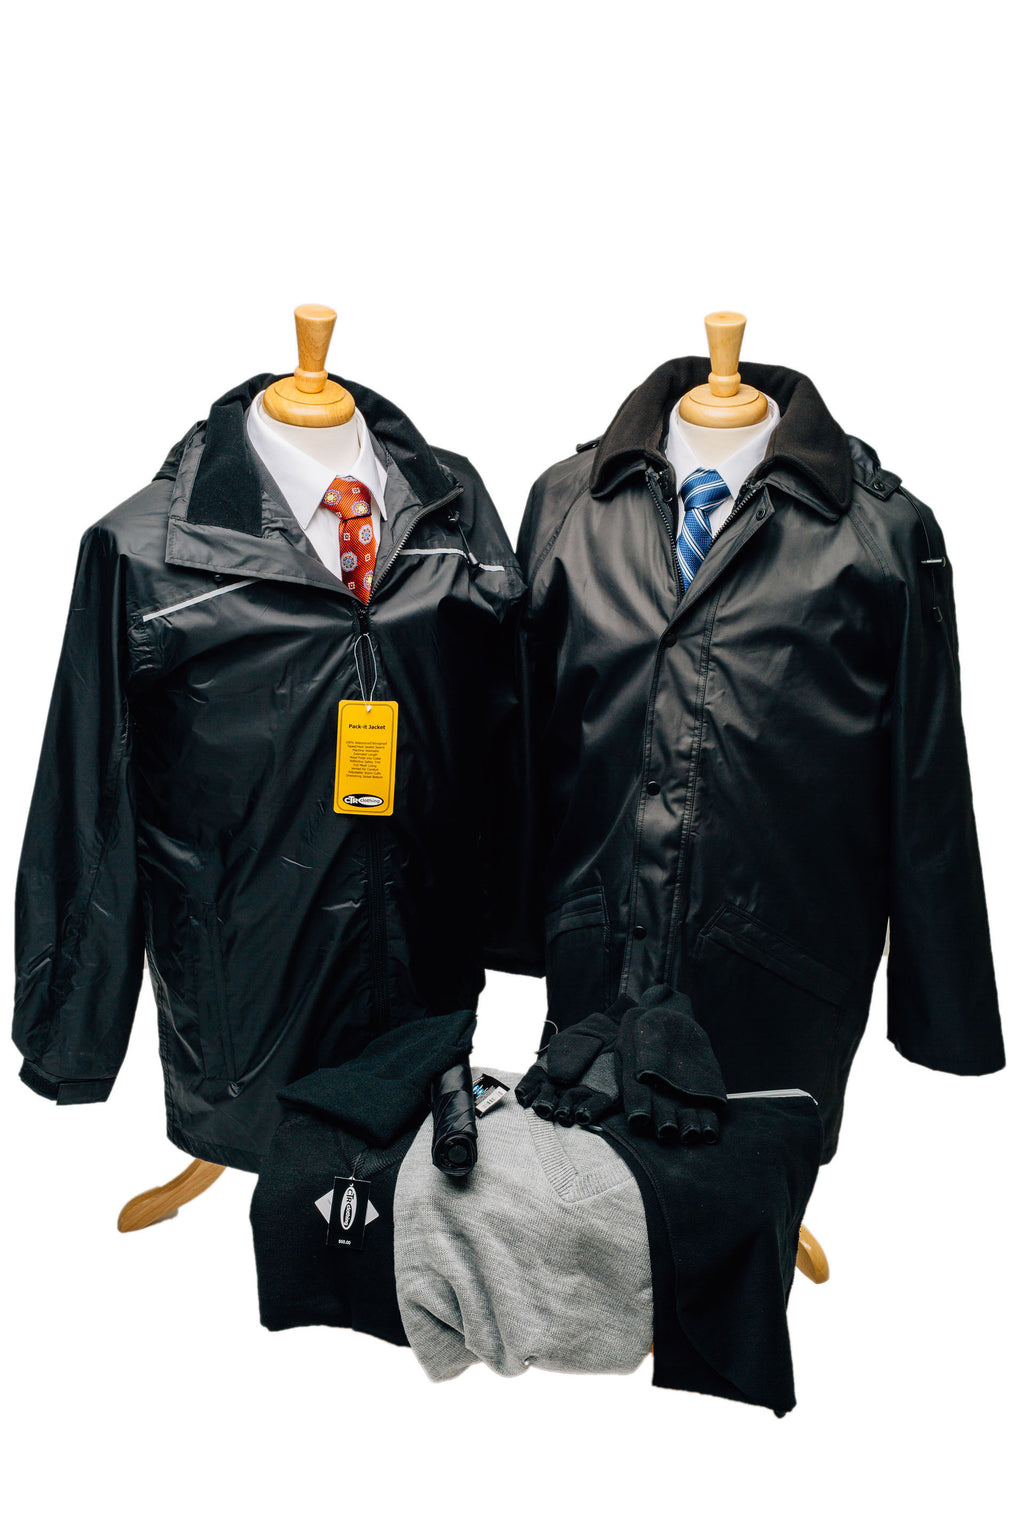 All Season Outerwear Missionary Package - Kater Shop